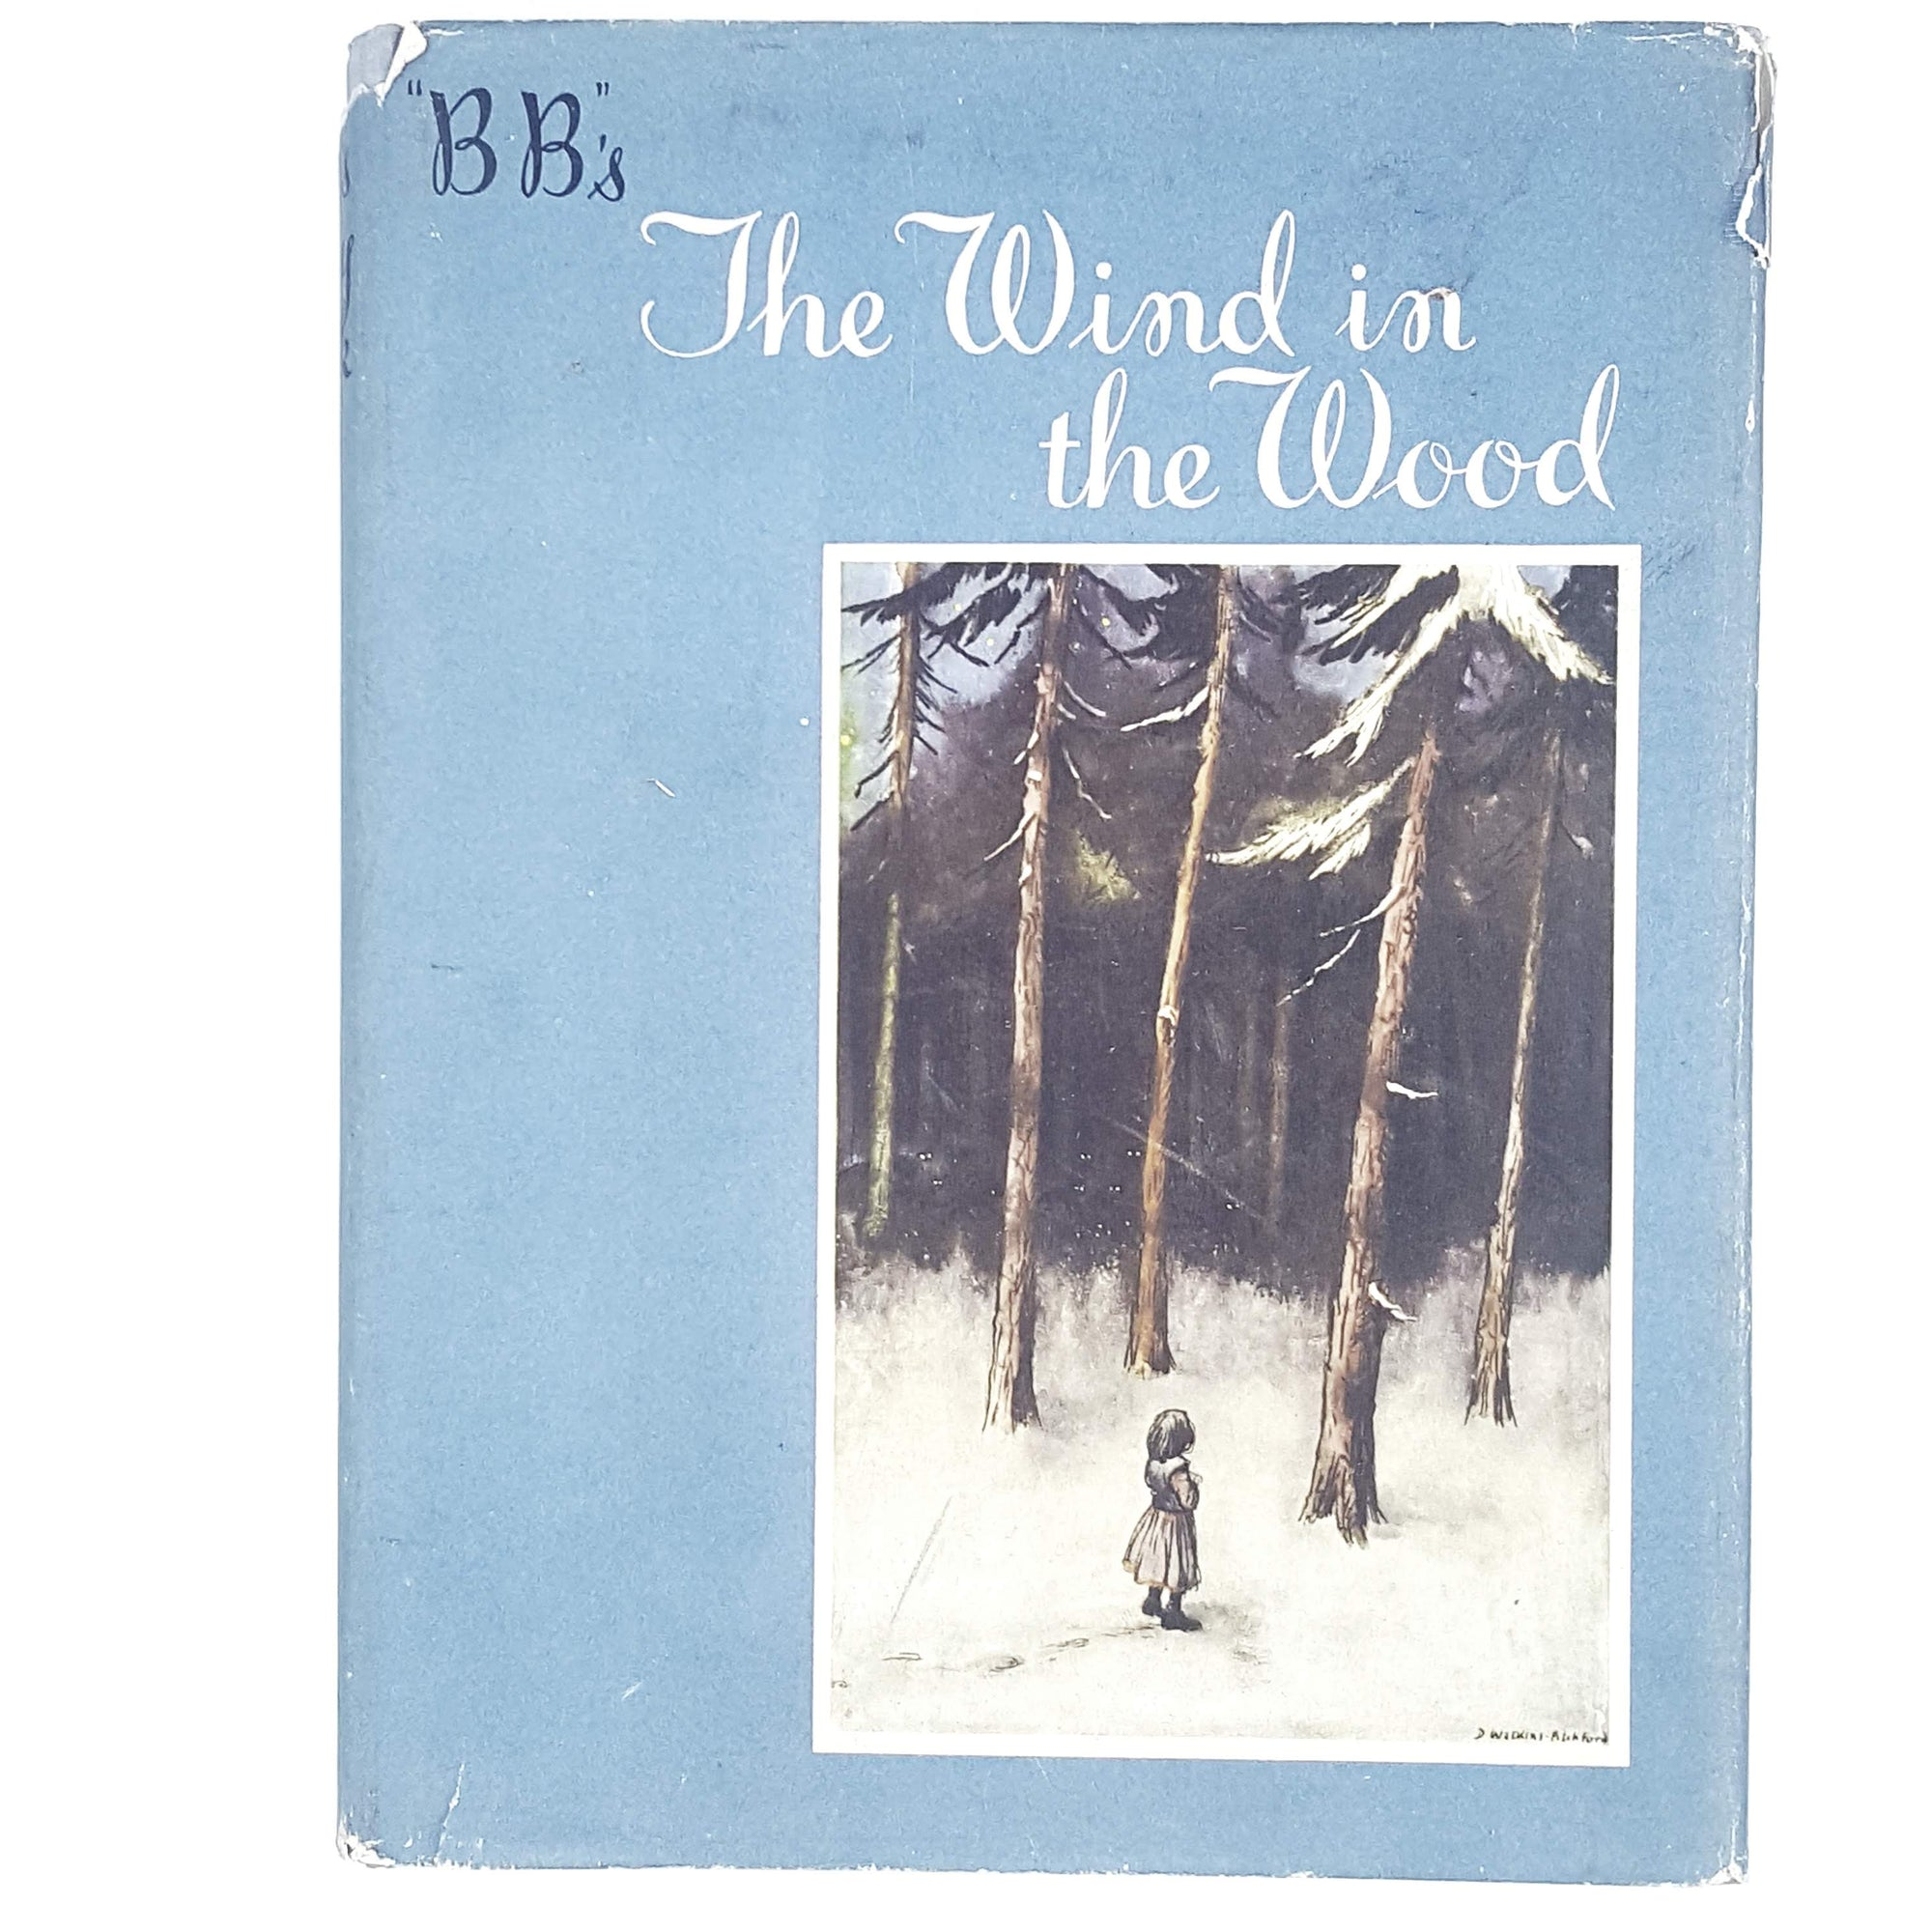 First Edition Illustrated The Wind in the Wood by B. B. 1952